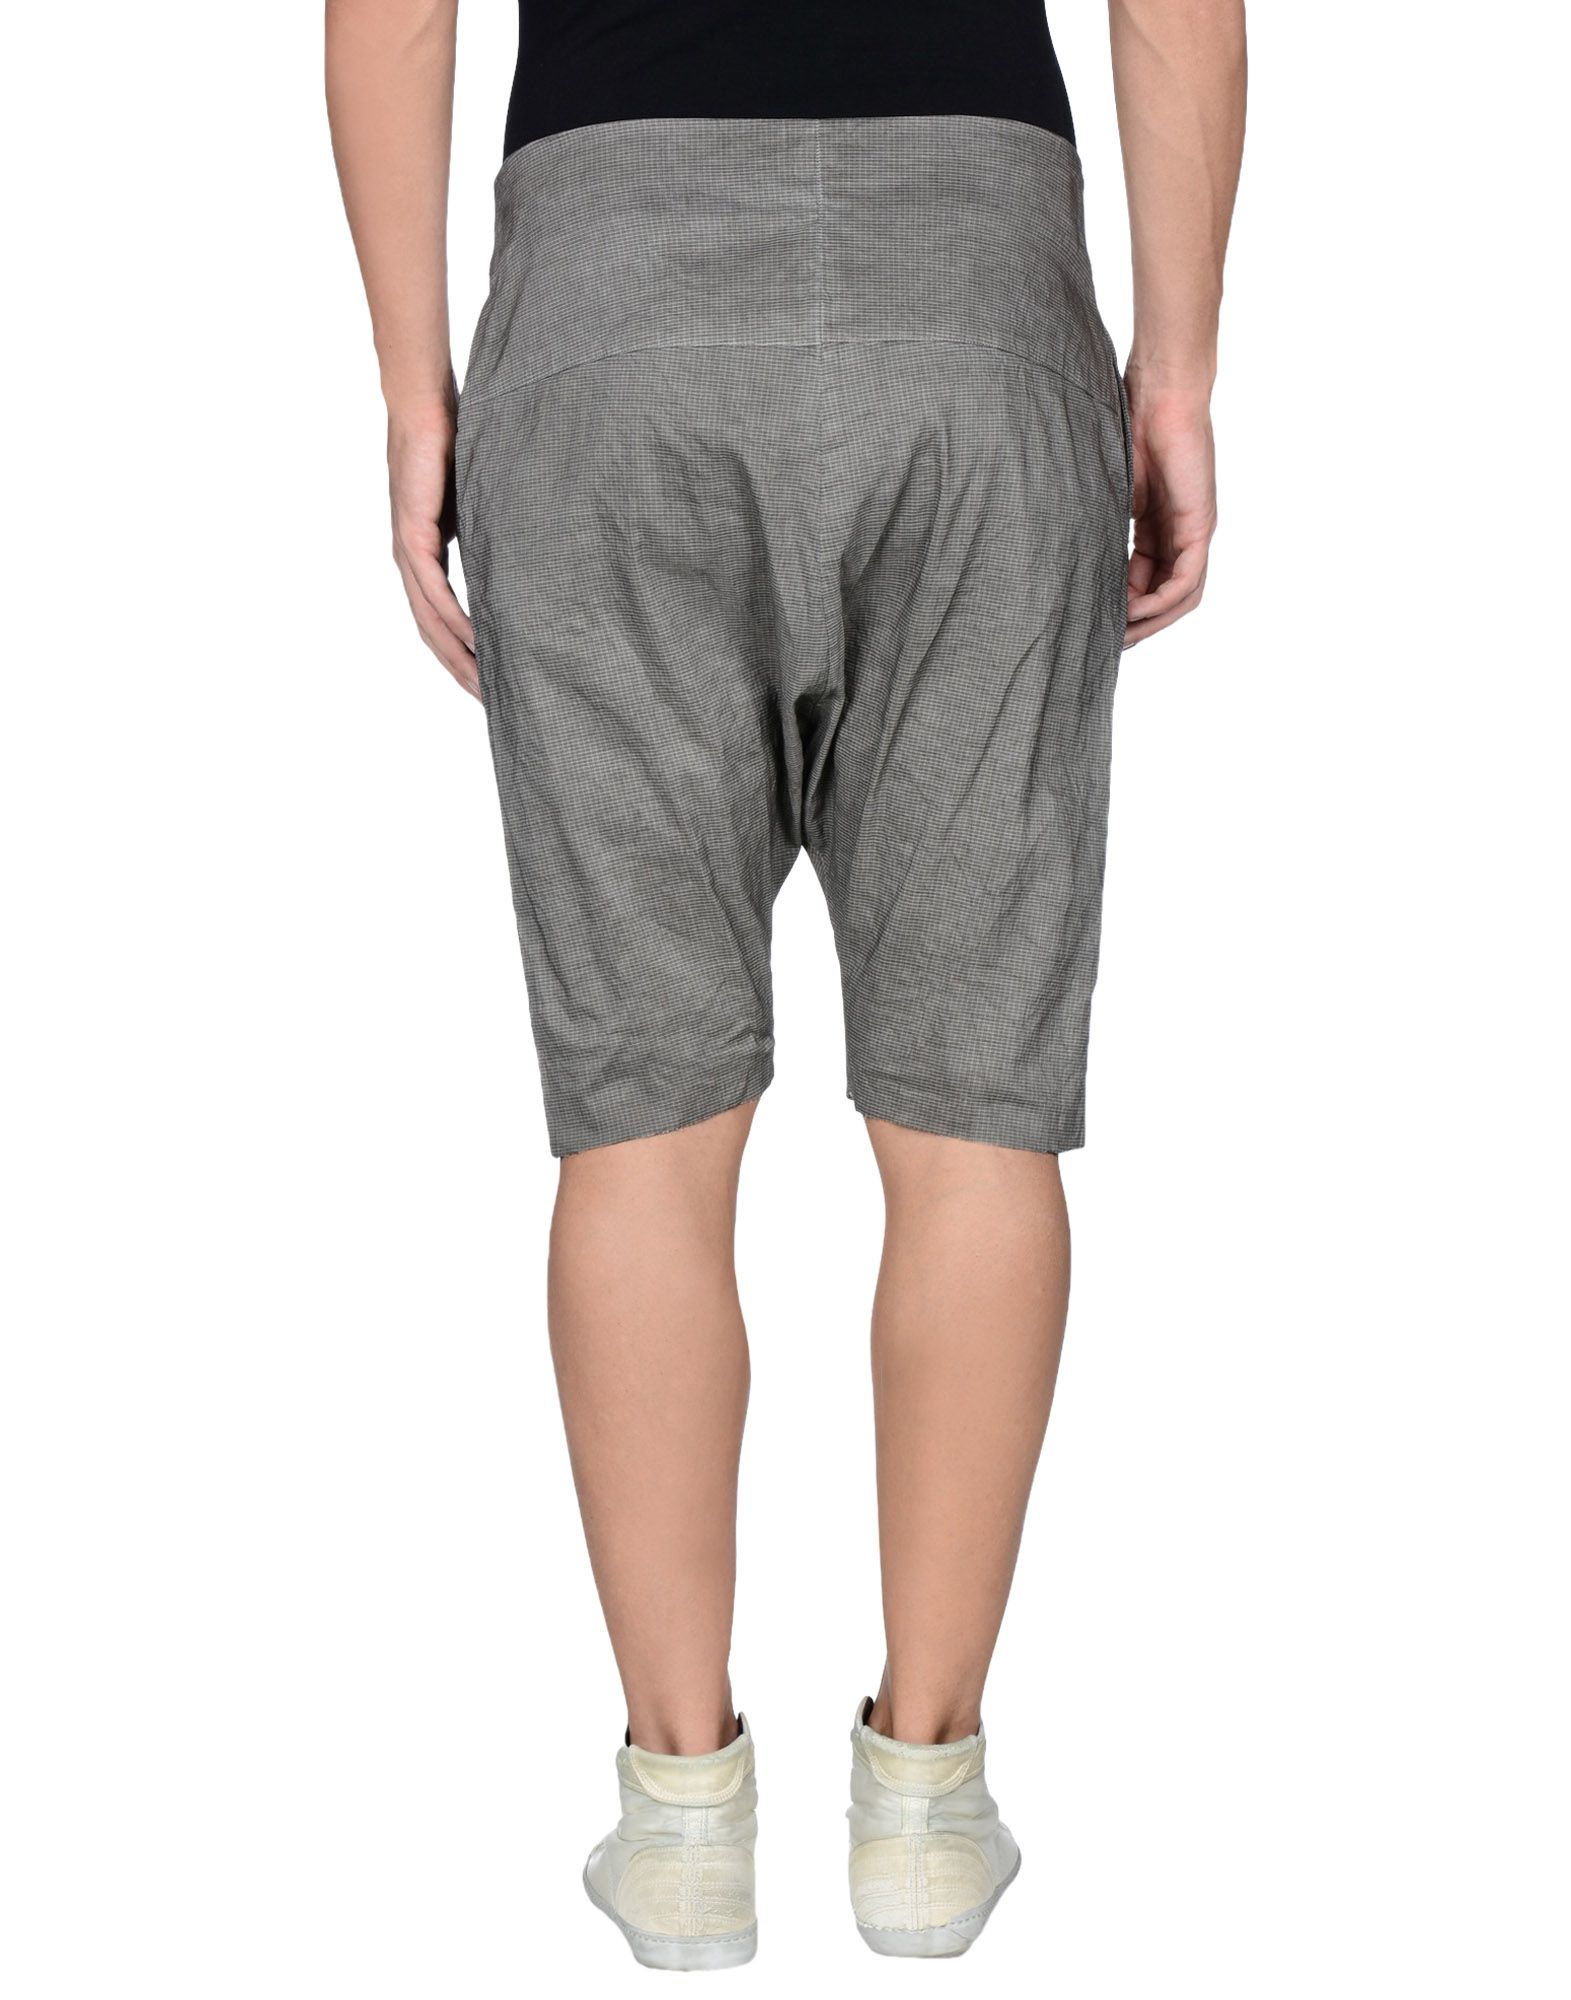 TROUSERS - Bermuda shorts Po</ototo></div>                                   <span></span>                               </div>             <div>                                     <div>                                             <div>                                                     <div>                               1527934644                            </div>                                                     <div>                               1527934644                            </div>                                                 </div>                                         </div>                                 </div>                             <div>                                     <div>                                             <ul>                                                     <li>                                                           <a href=